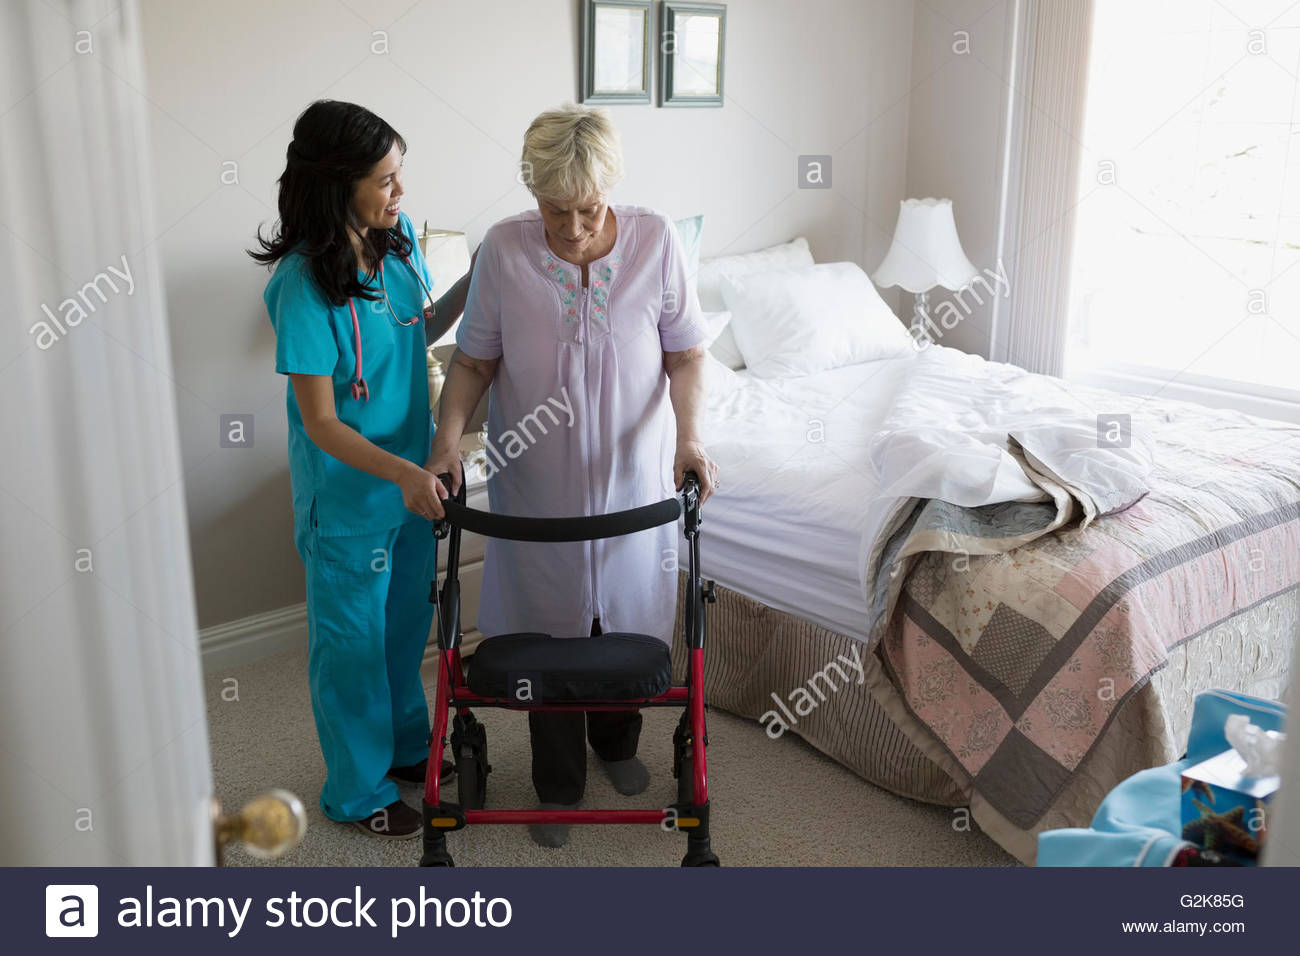 Home caregiver helping senior woman with walker in bedroom - Stock Image